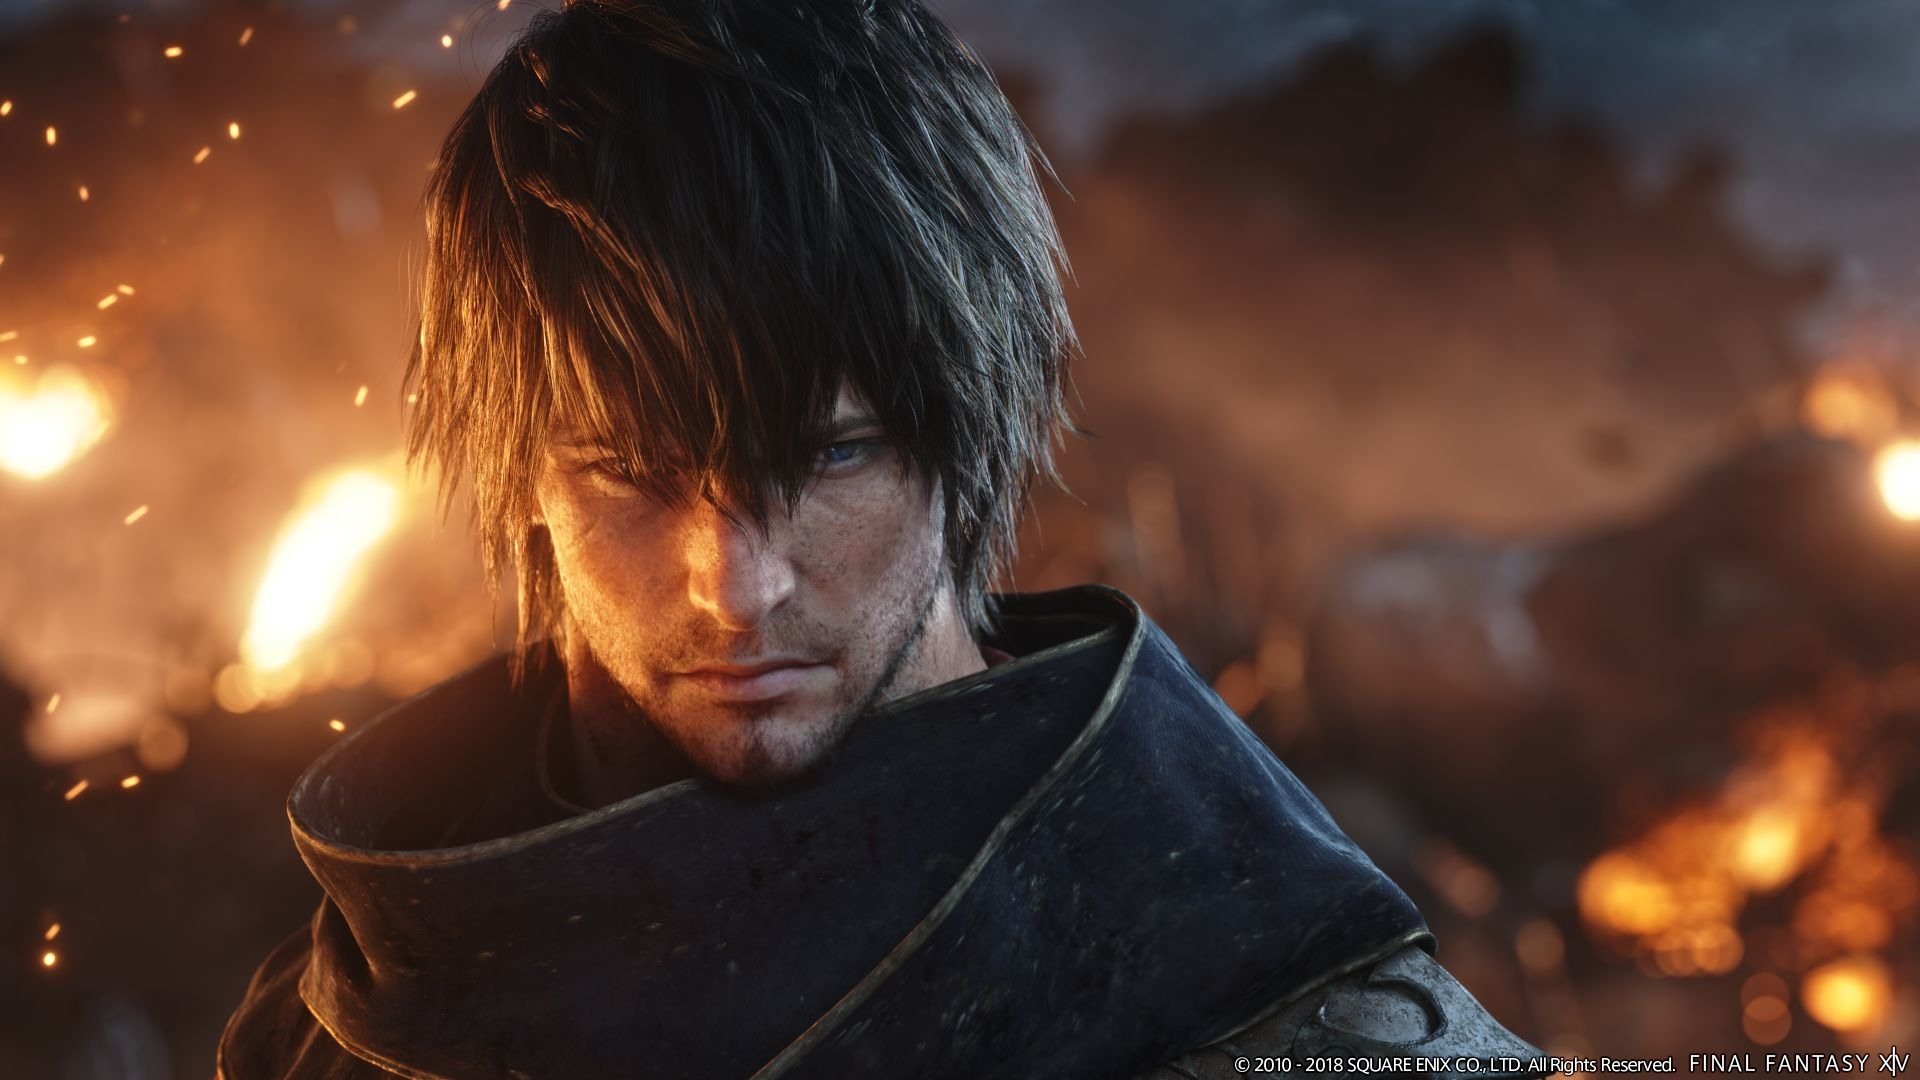 Final Fantasy Xiv Director Praises Xbox Head Phil Spencer For His